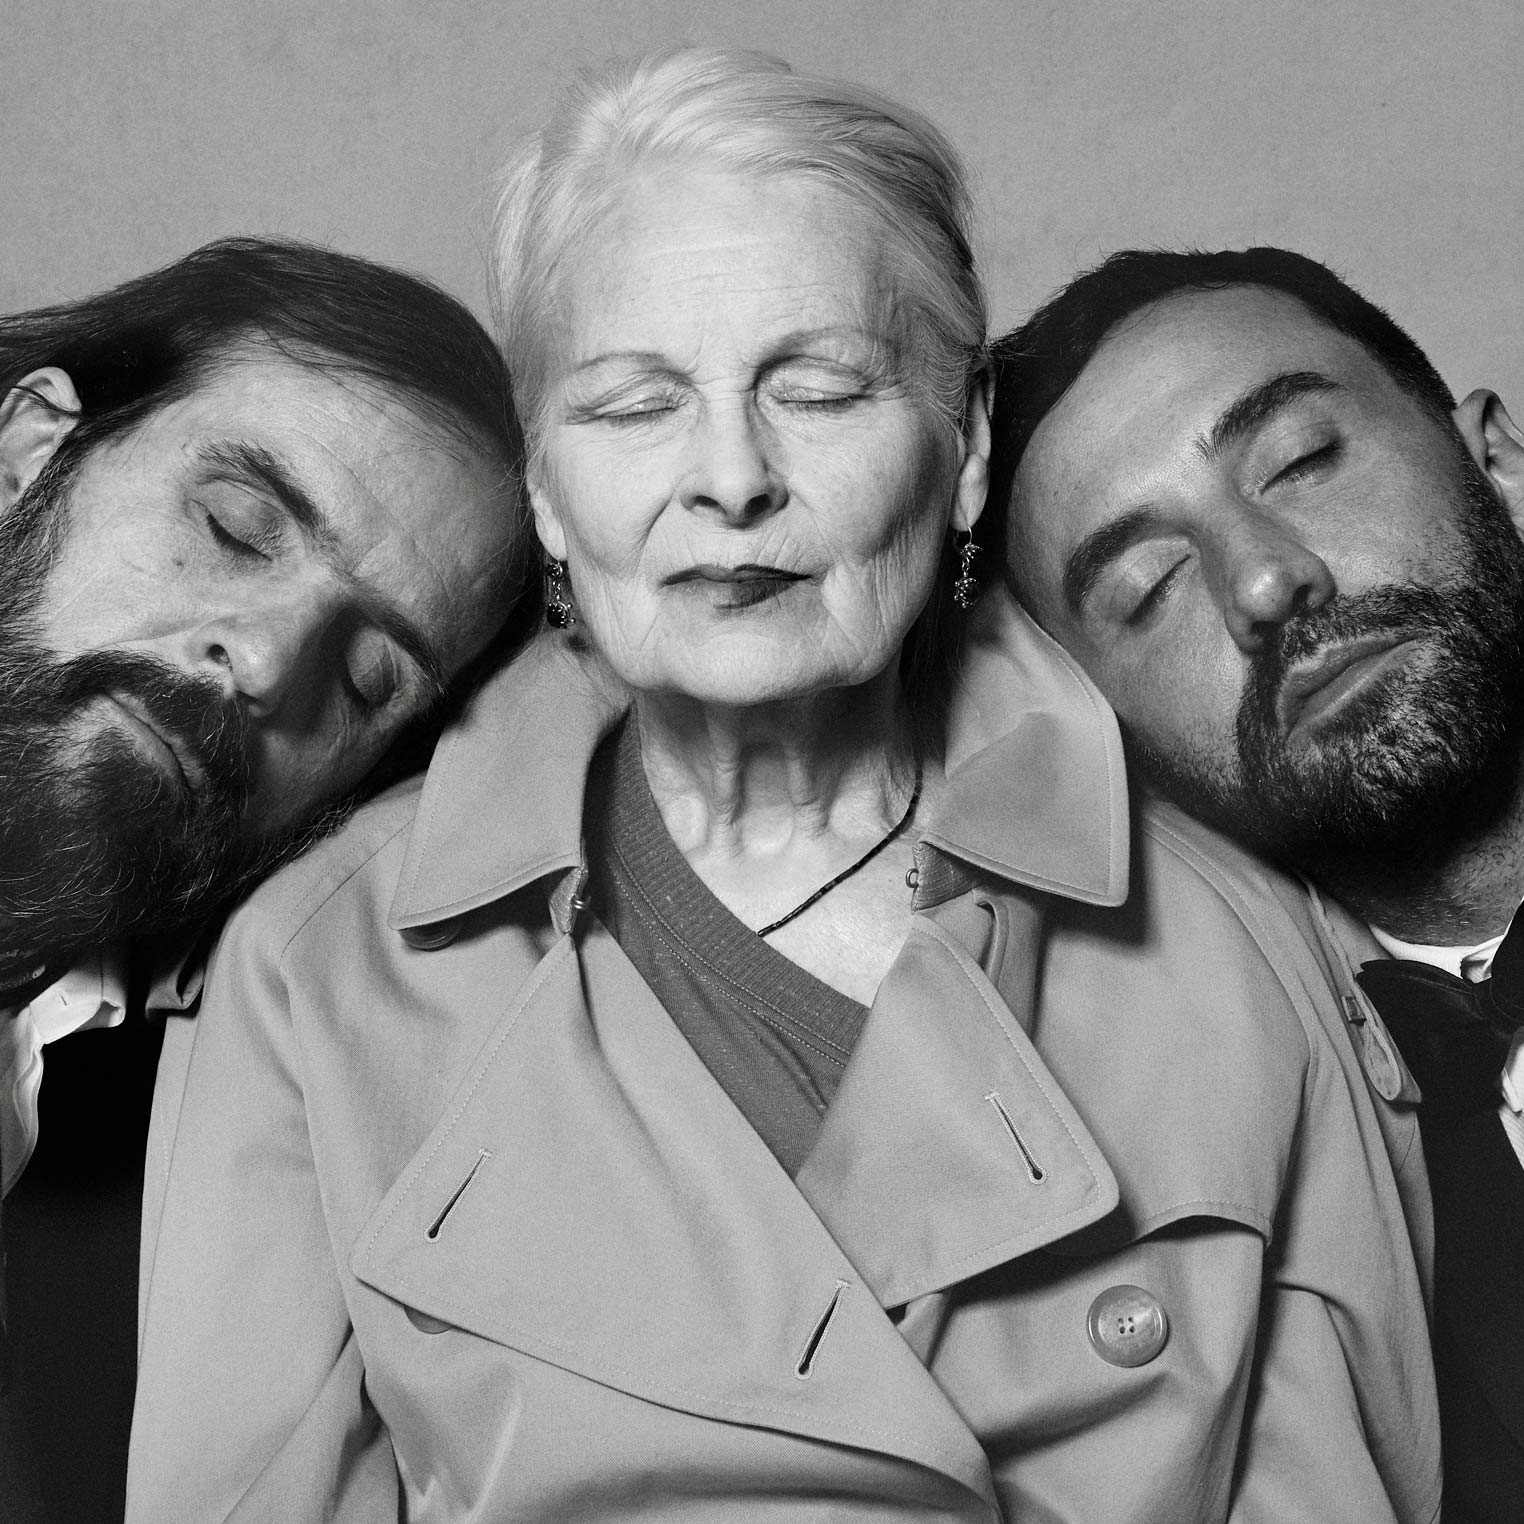 Le-Mile-Magazine-by-Le-Mile-Studios-presenting-Portrait-of-Riccardo-Tisci,-Vivienne-Westwood-and-Andreas-Kronthaler-c-Courtesy-of-Burberry_-Brett-Lloyd_001.jpg